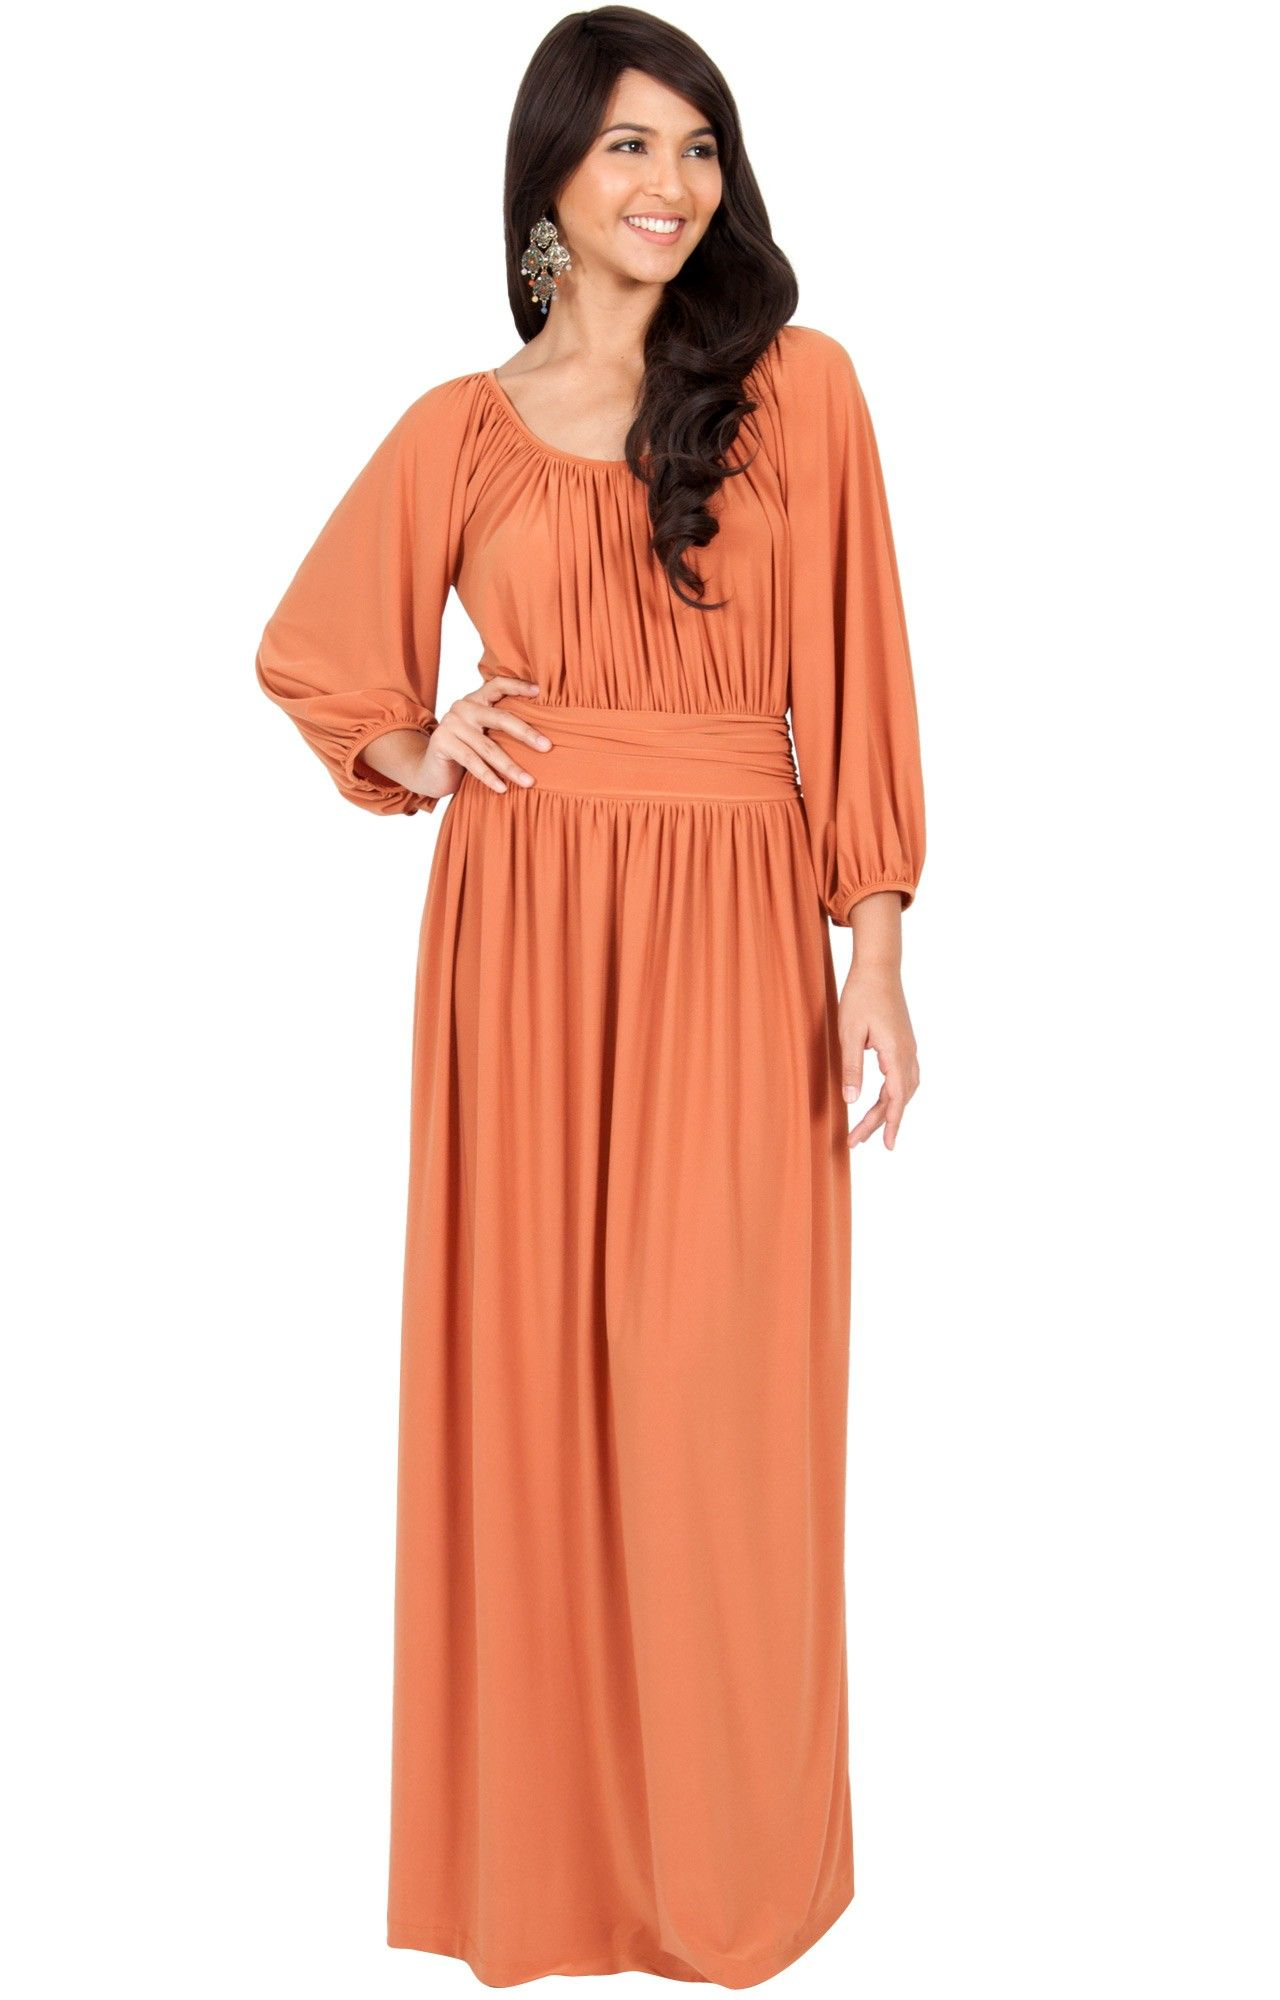 Franny Long Sleeve Peasant Casual Flowy Fall Modest Maxi Dress Gown Comfortable Maxi Dresses Modest Maxi Dress Maxi Dress Cocktail [ 2000 x 1280 Pixel ]